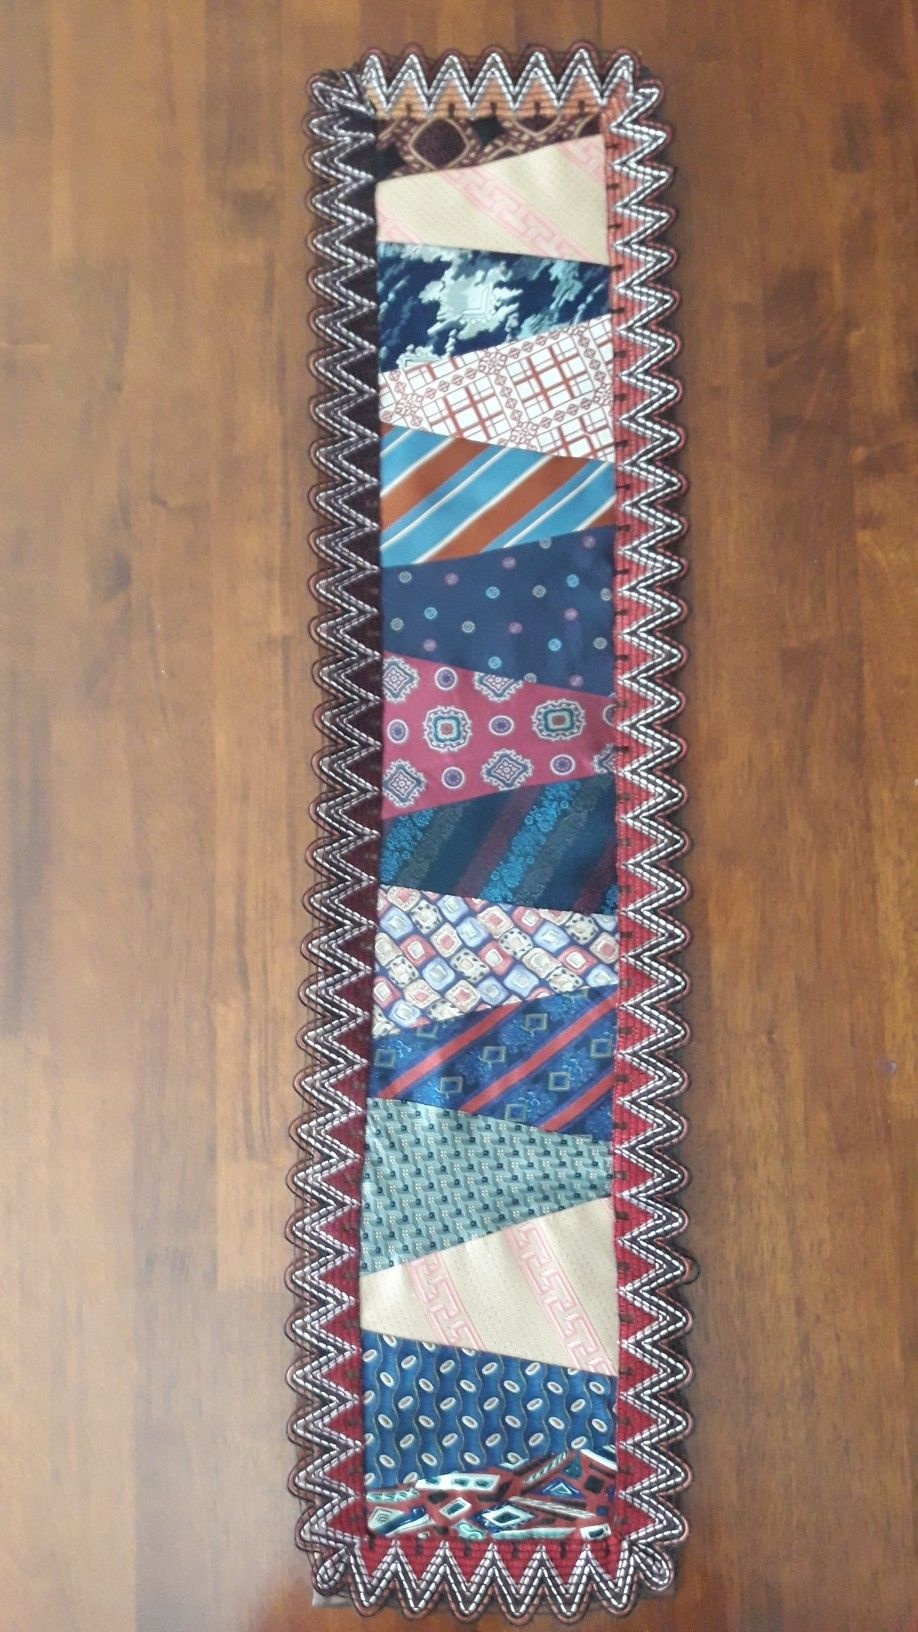 Neck-ties are used to make this table runner | Necktie ...